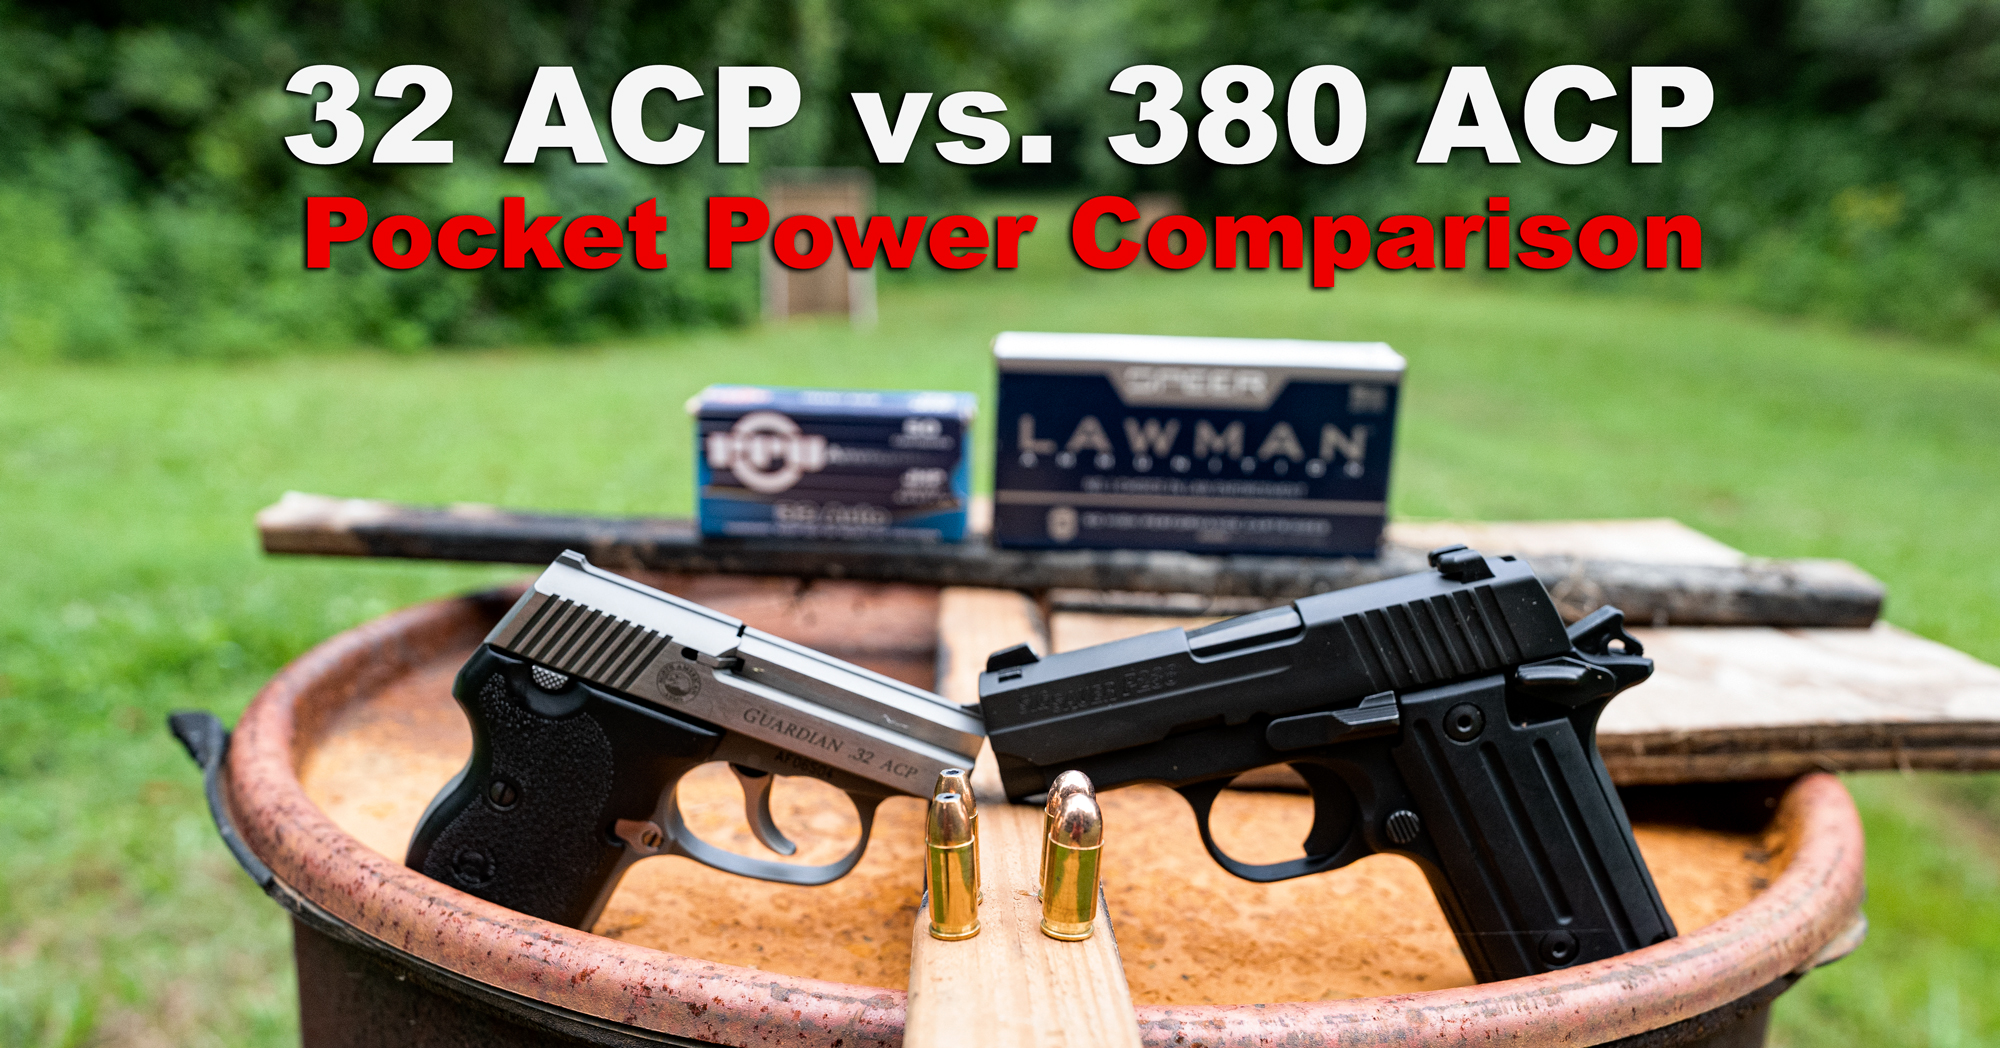 32 ACP pistol next to a 380 ACP pistol with ammo at the shooting range